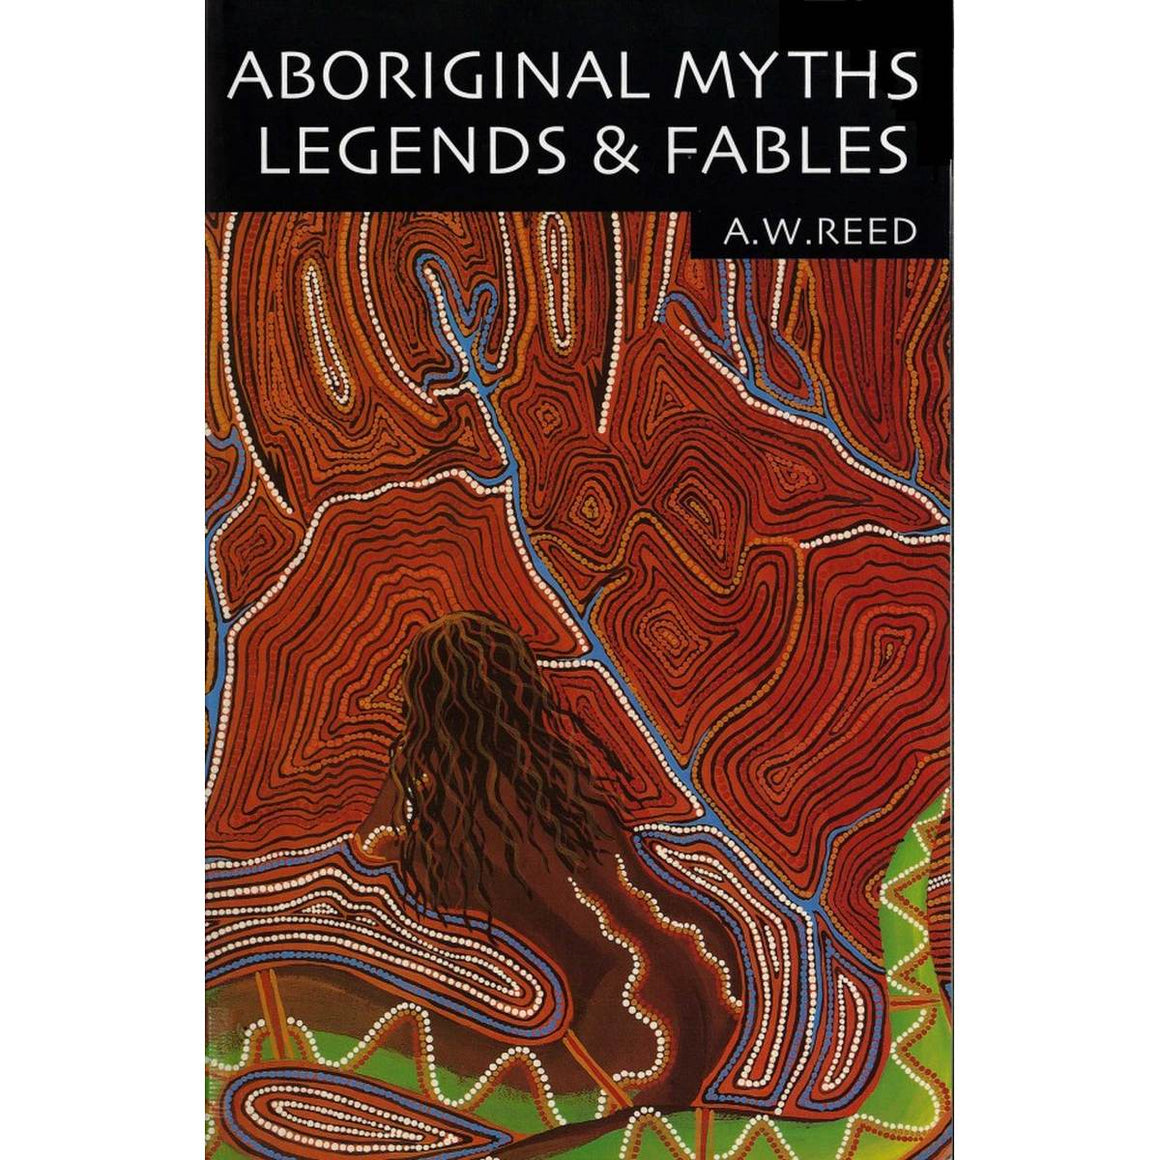 Aboriginal Myths, Legends and Fables | Author: A. W. Reed